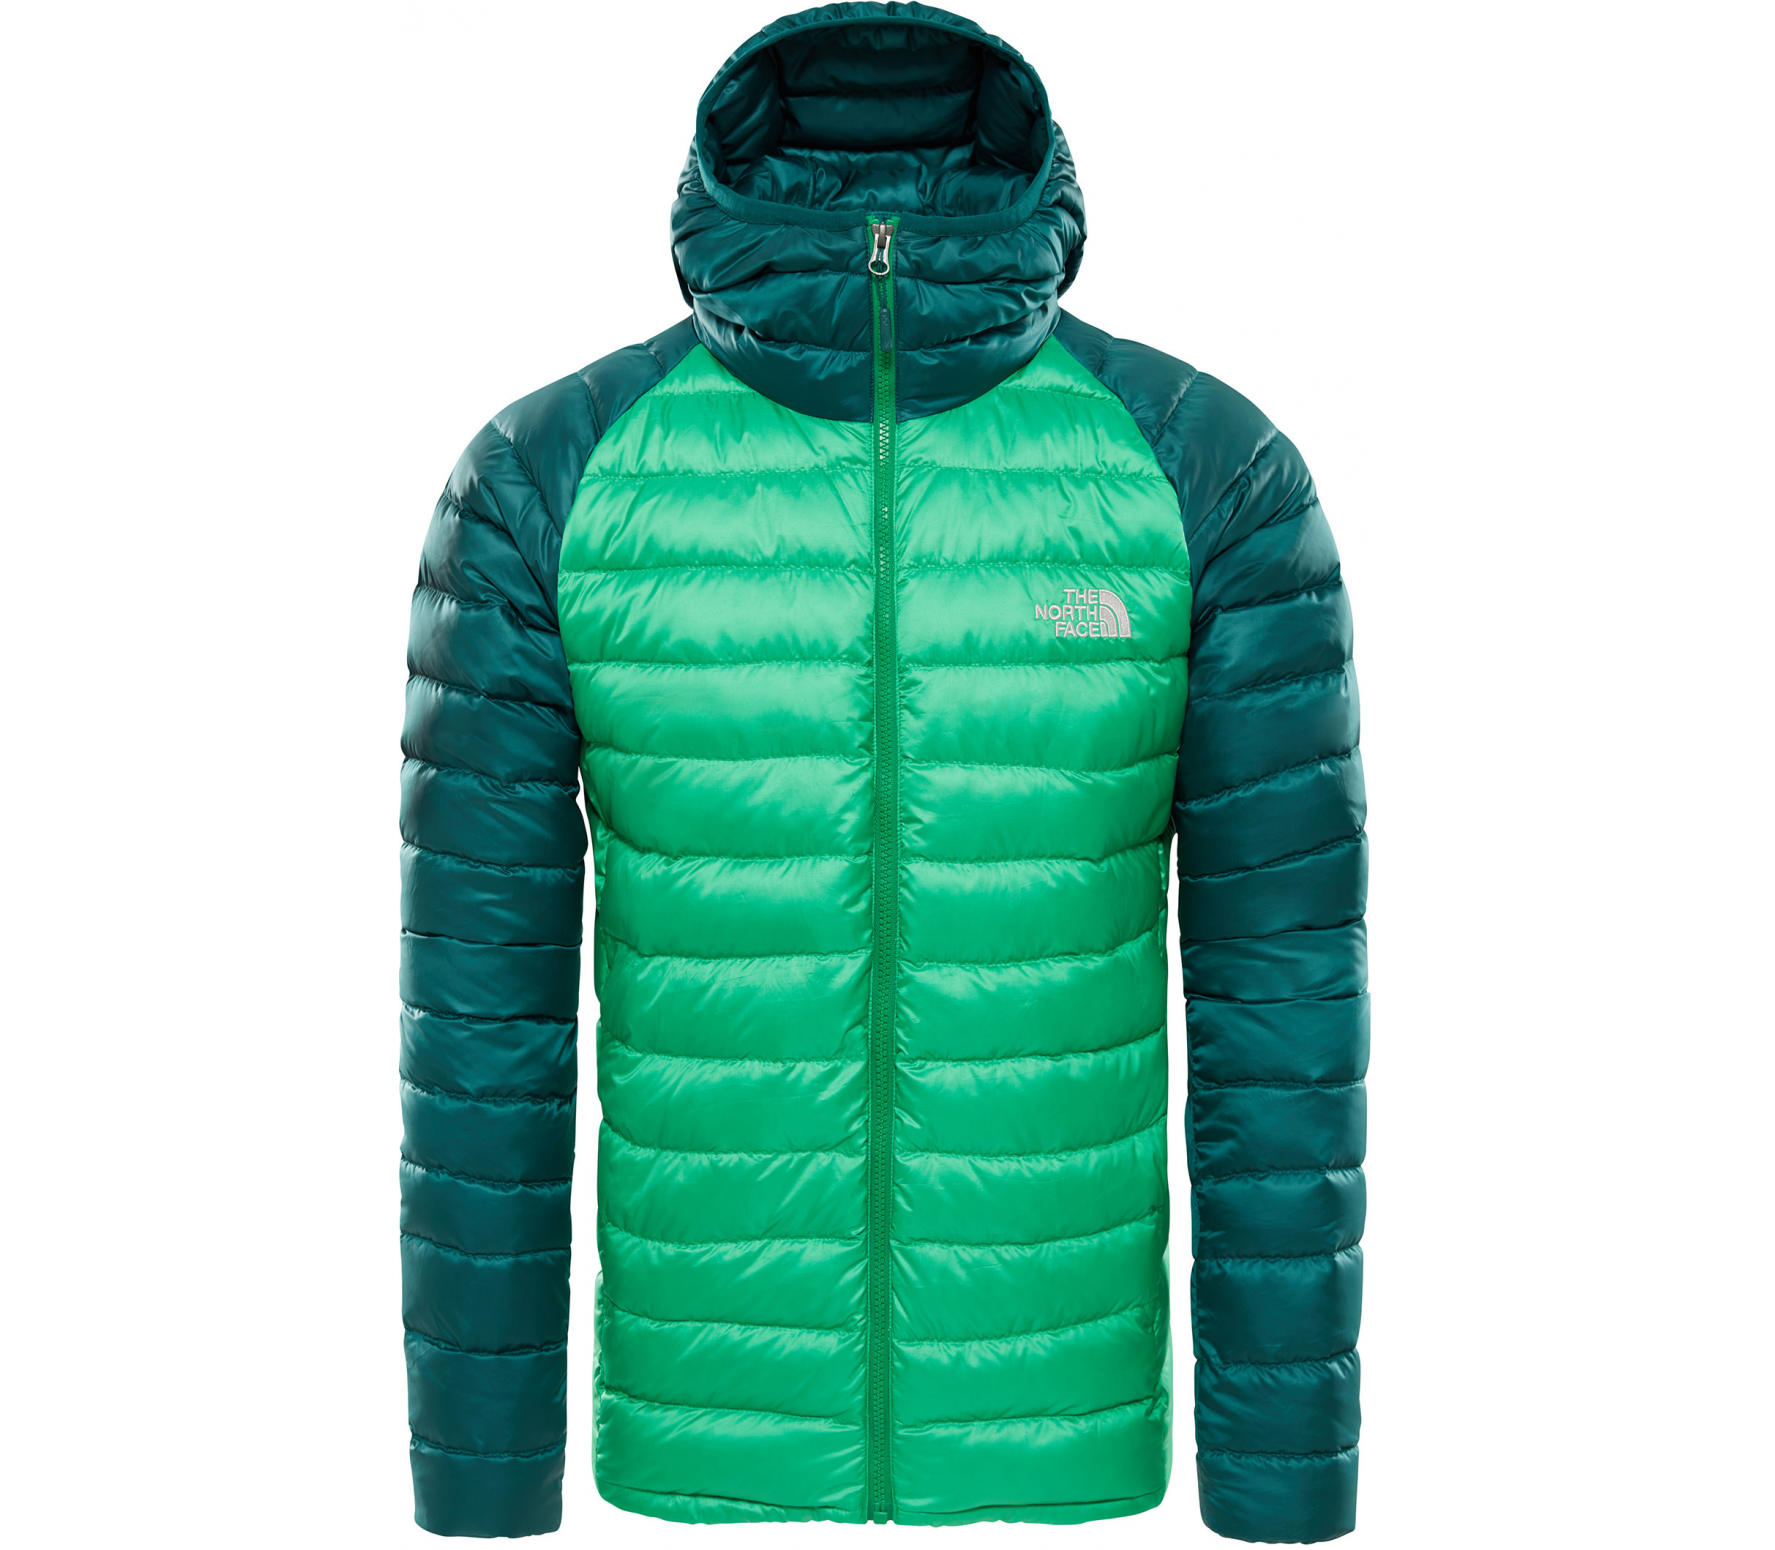 4469cdc4ad81 The North Face - Trevail Herren Daunenjacke (grün) im Online Shop ...